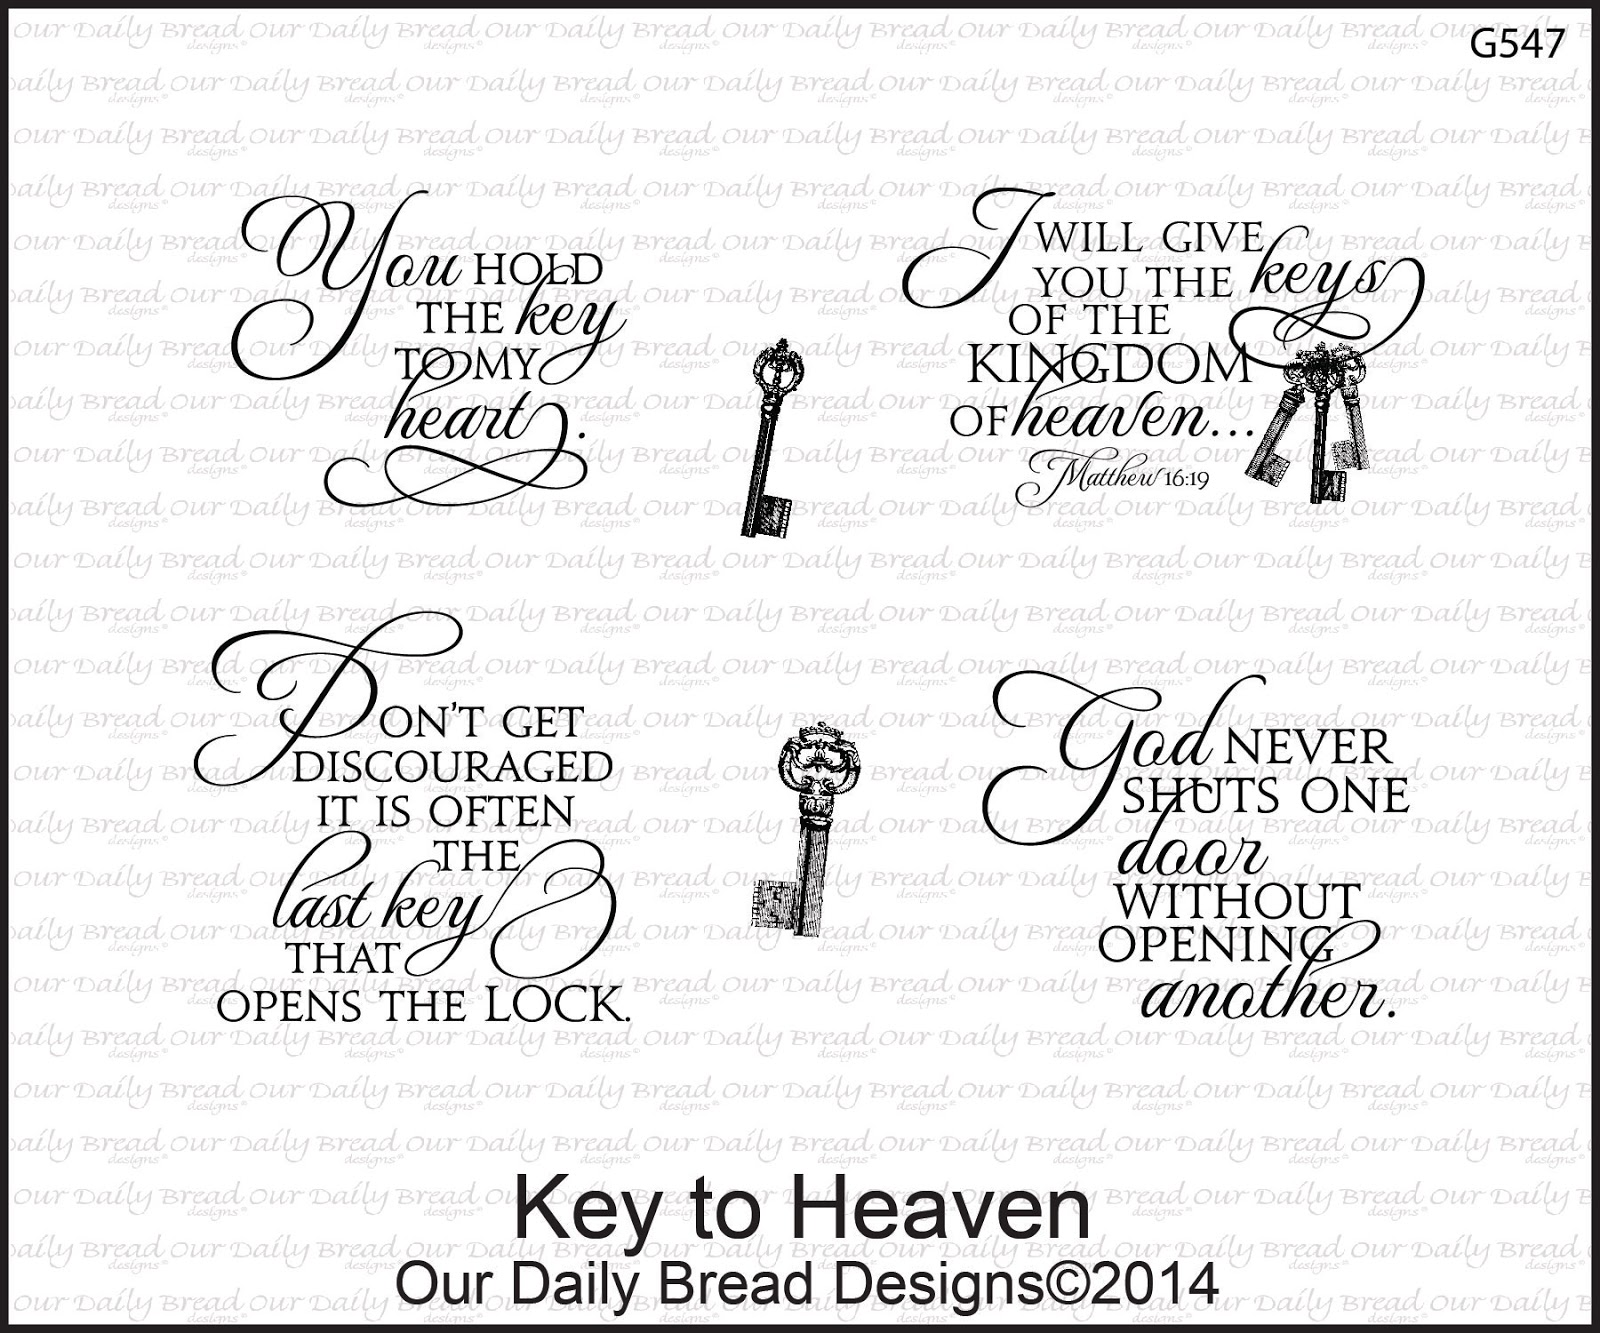 Stamps - Our Daily Bread Designs Key to Heaven